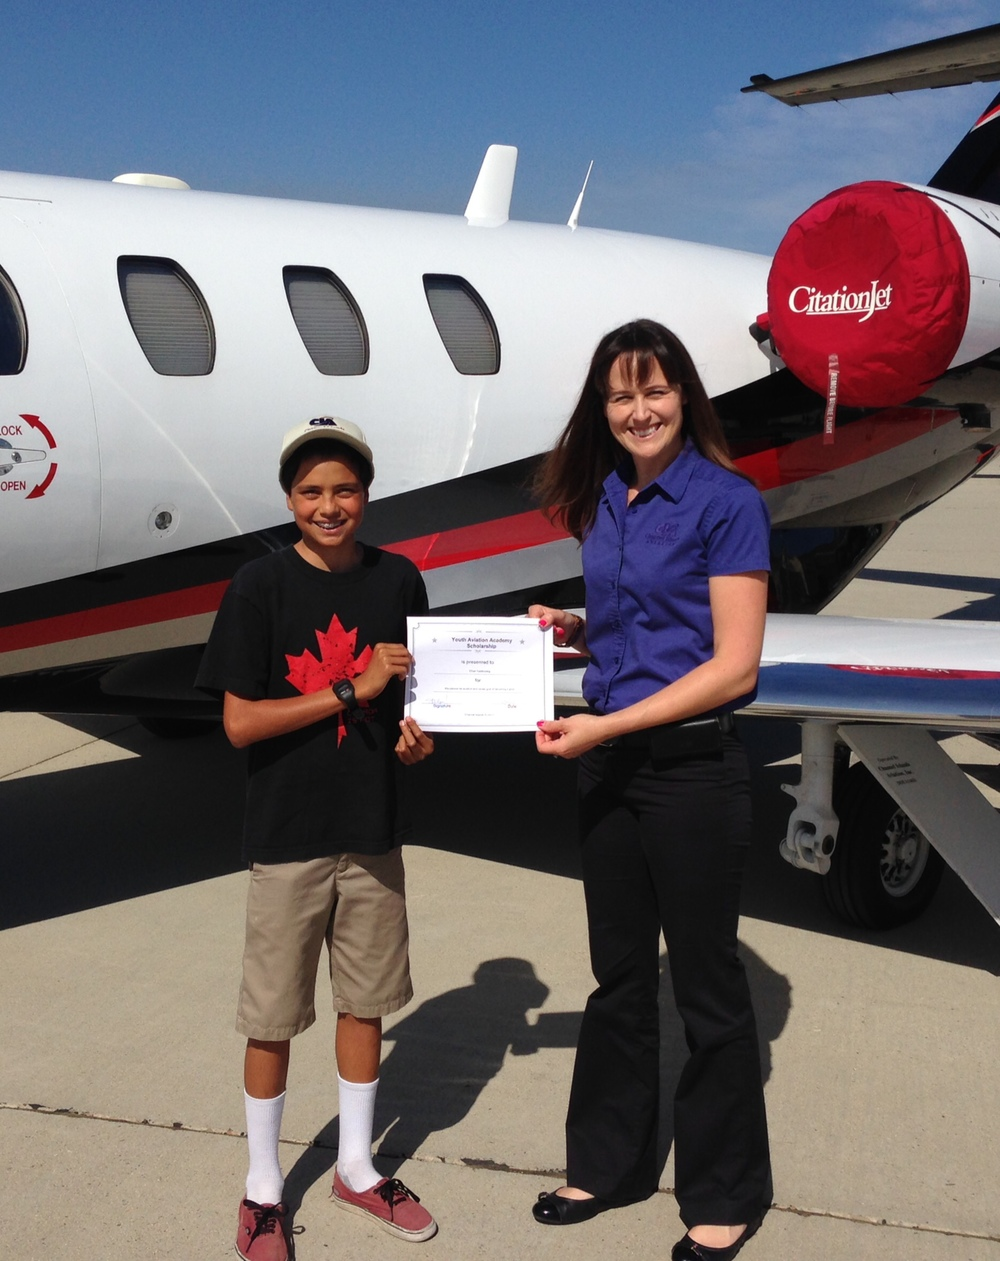 Ethan Kastenberg, 12, receives scholarship from Sarah Oberman Bartush, flight school manager.